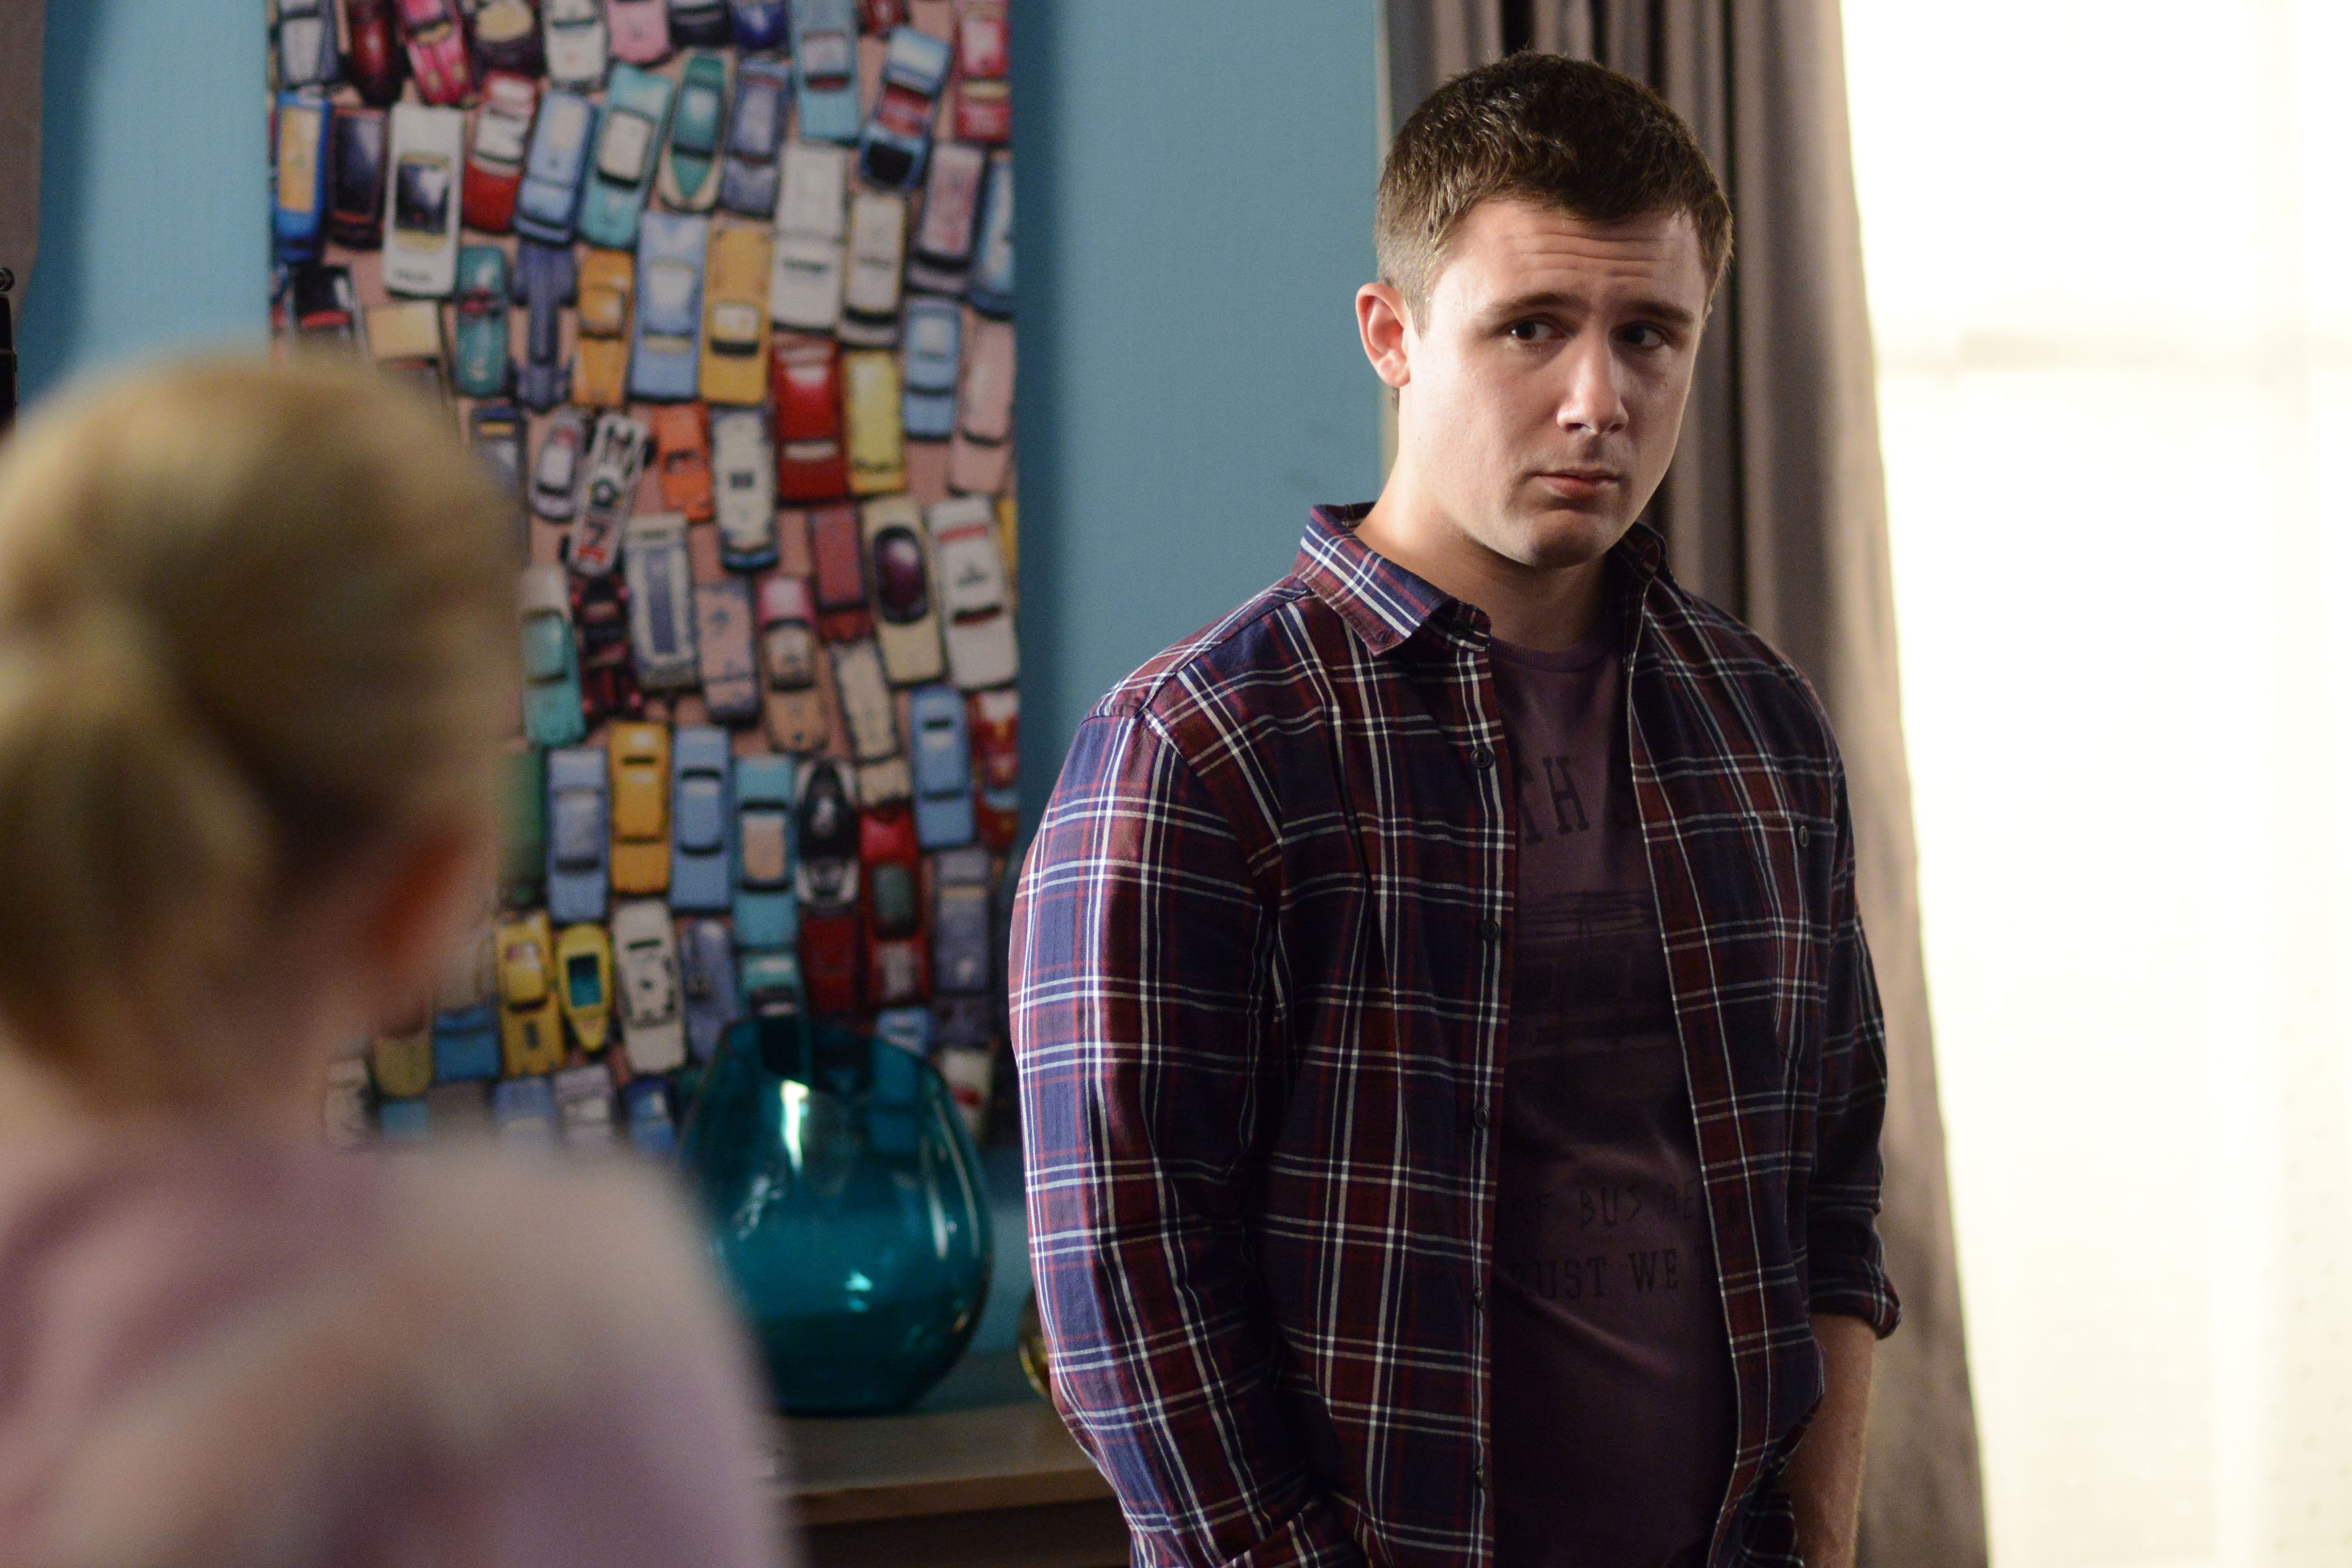 EastEnders spoiler: The Lucy Beale murder mystery deepens as Lee Carter reveals secret about the night she died